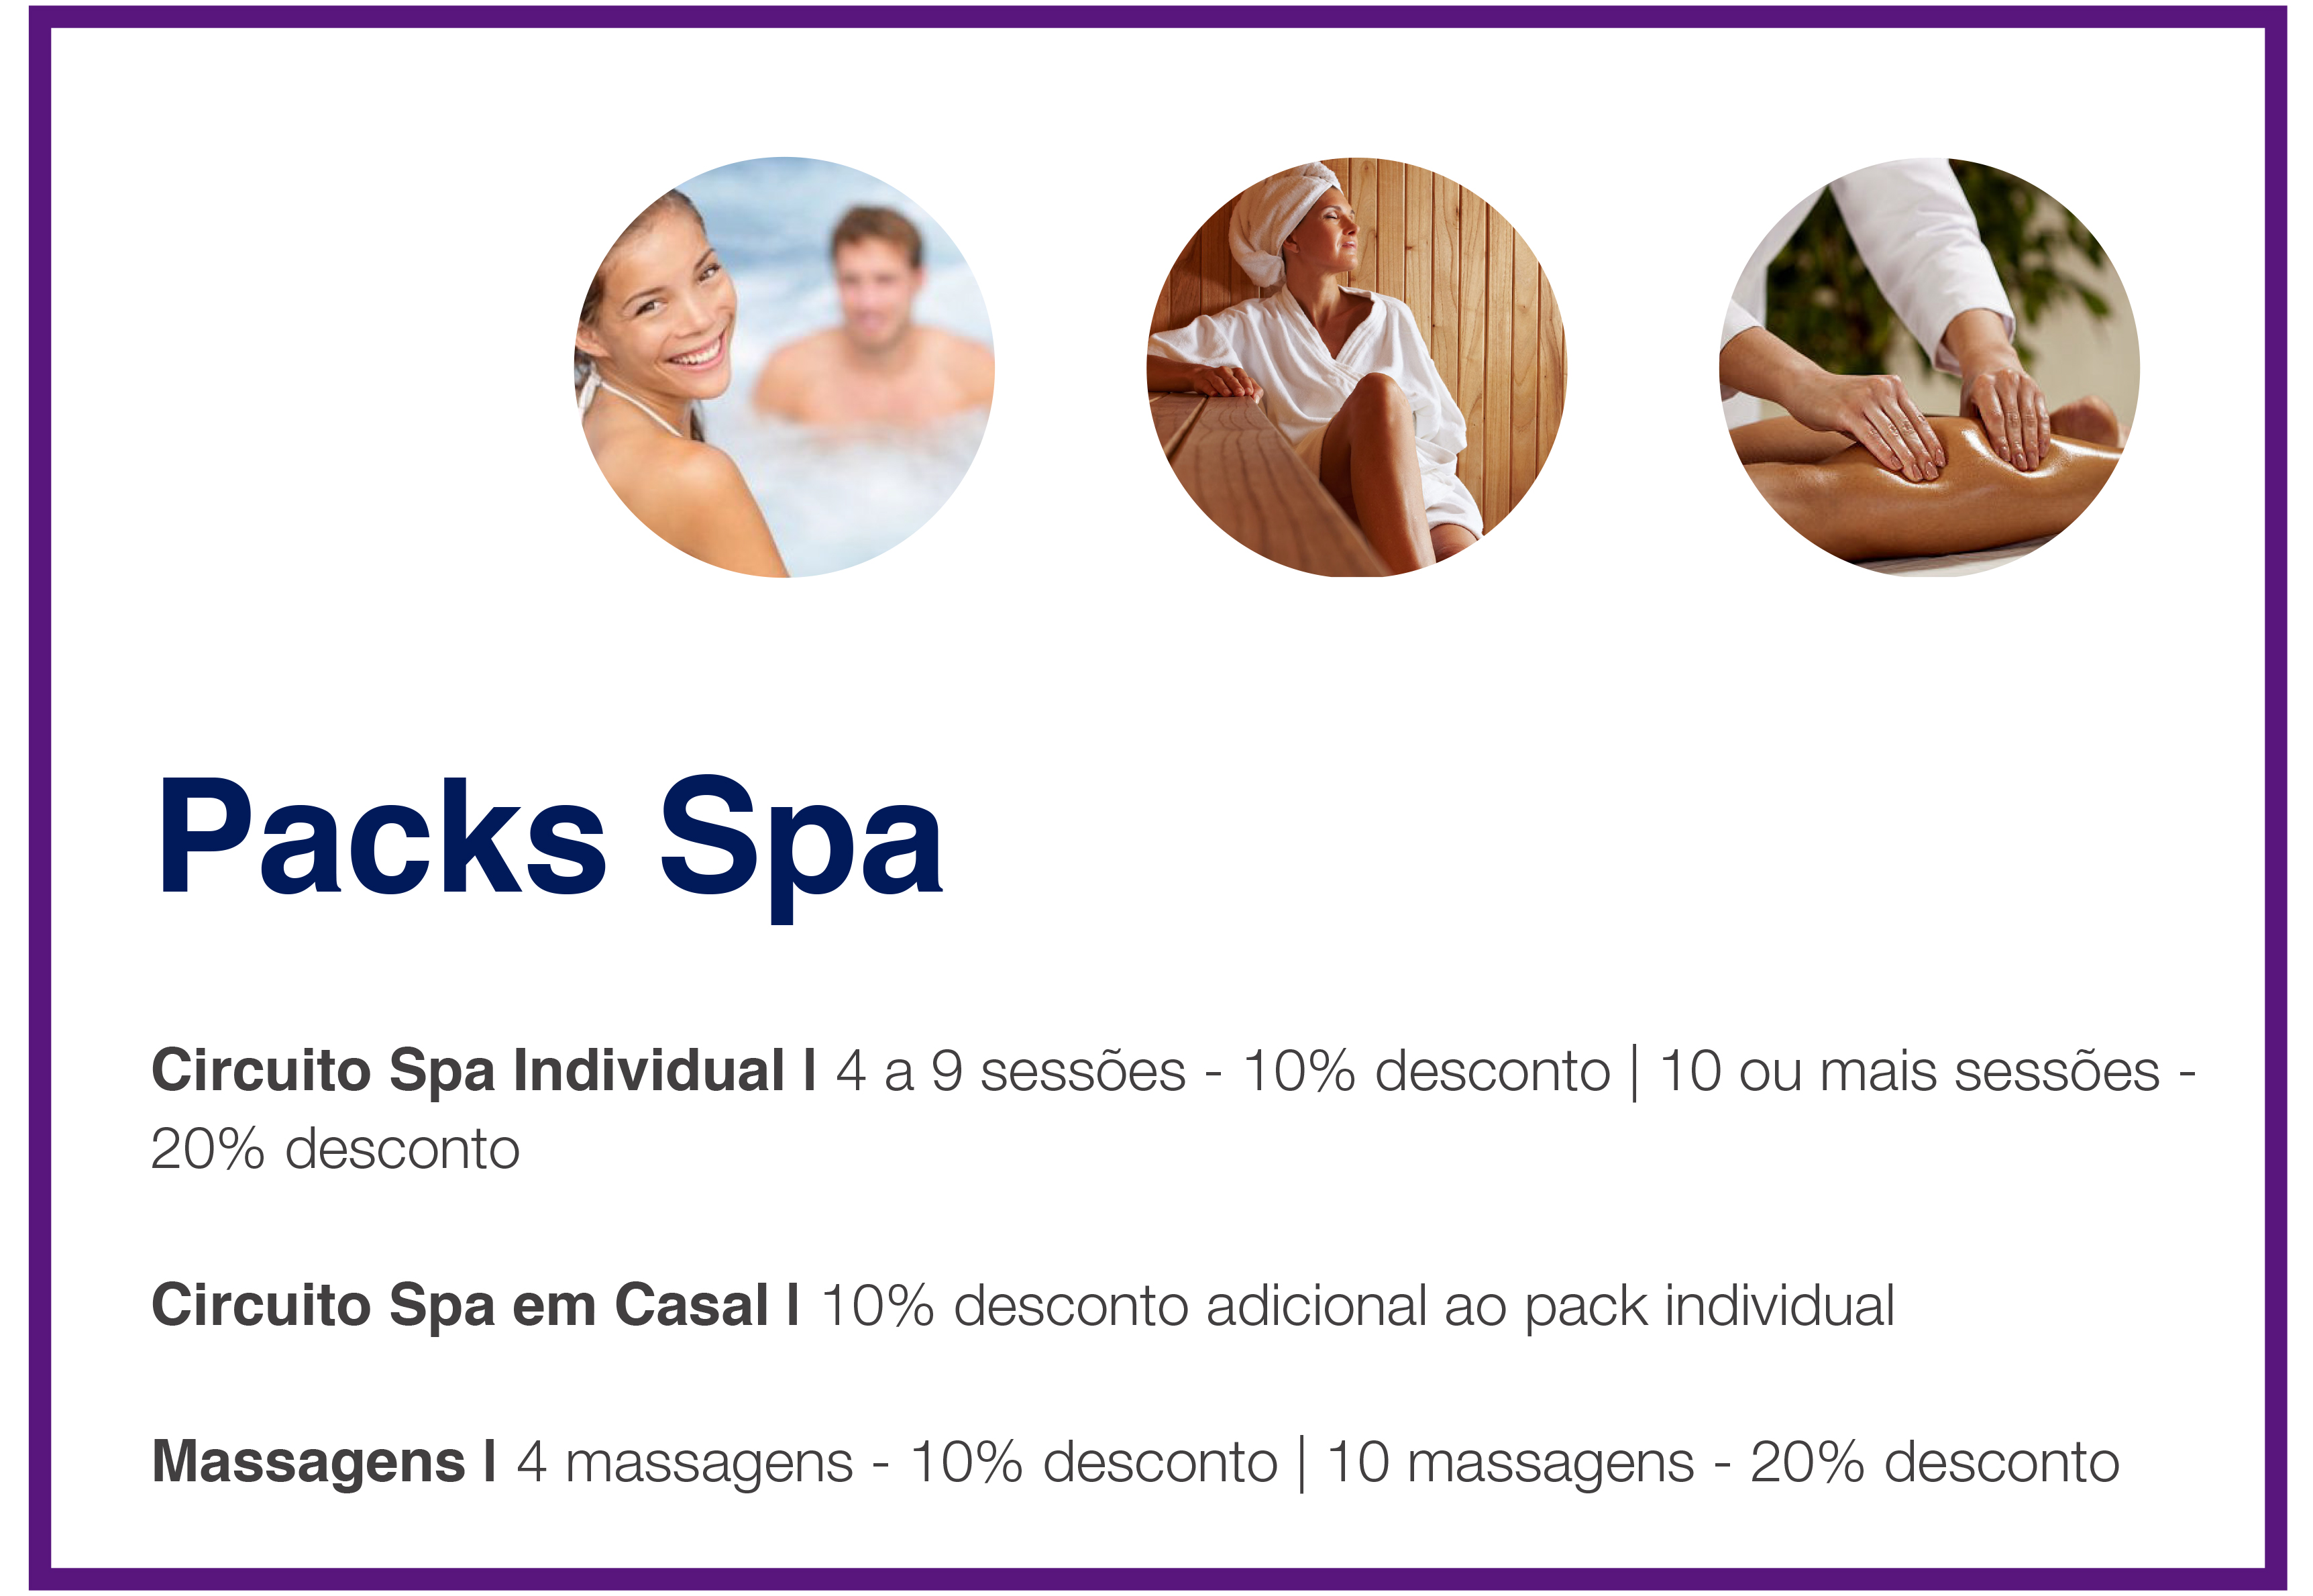 packs spa